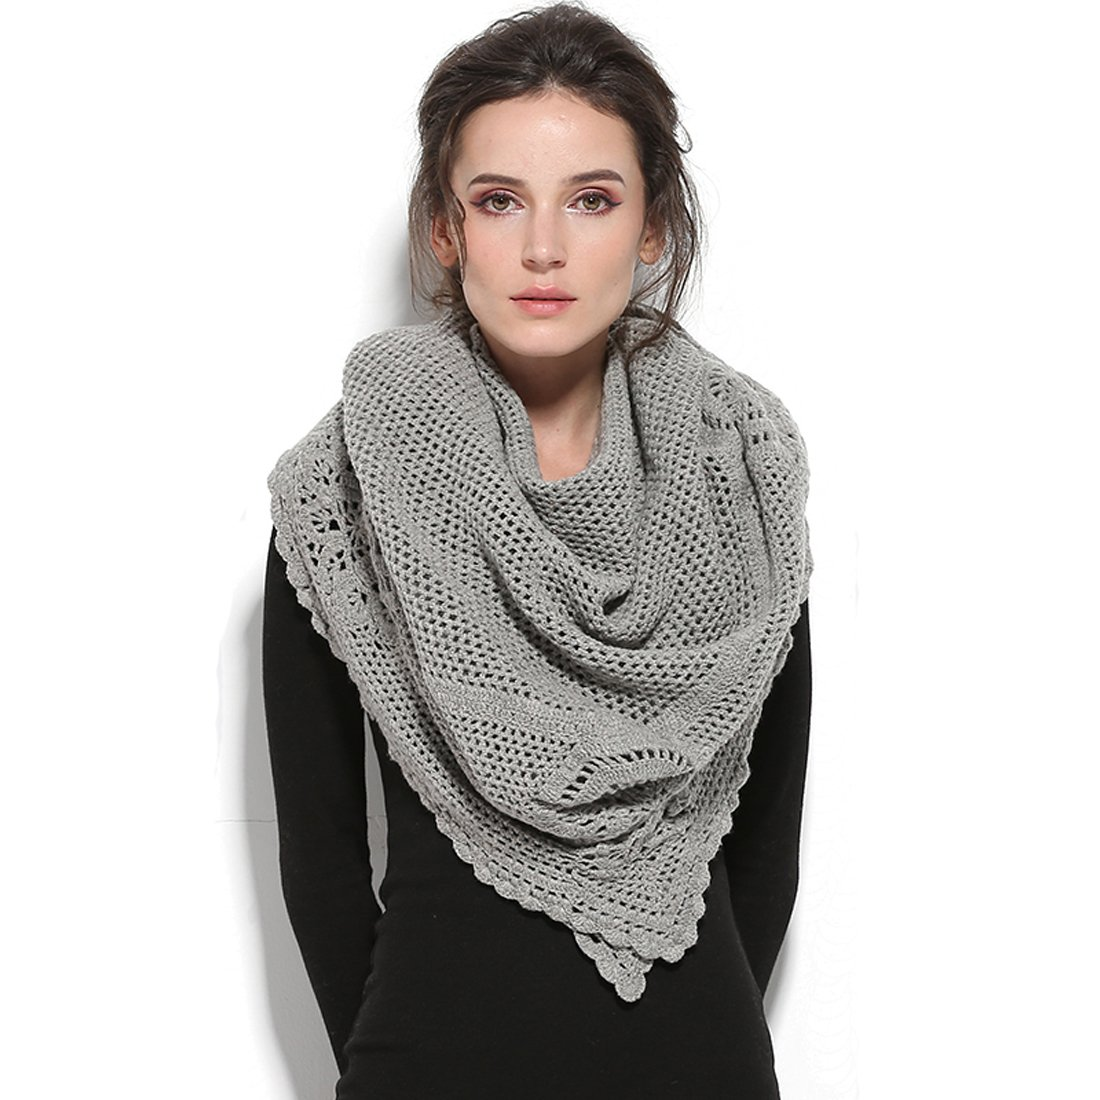 ZORJAR Wool Winter Scarf Crochet Warm Triangle Thick Fashion Scarves For Women